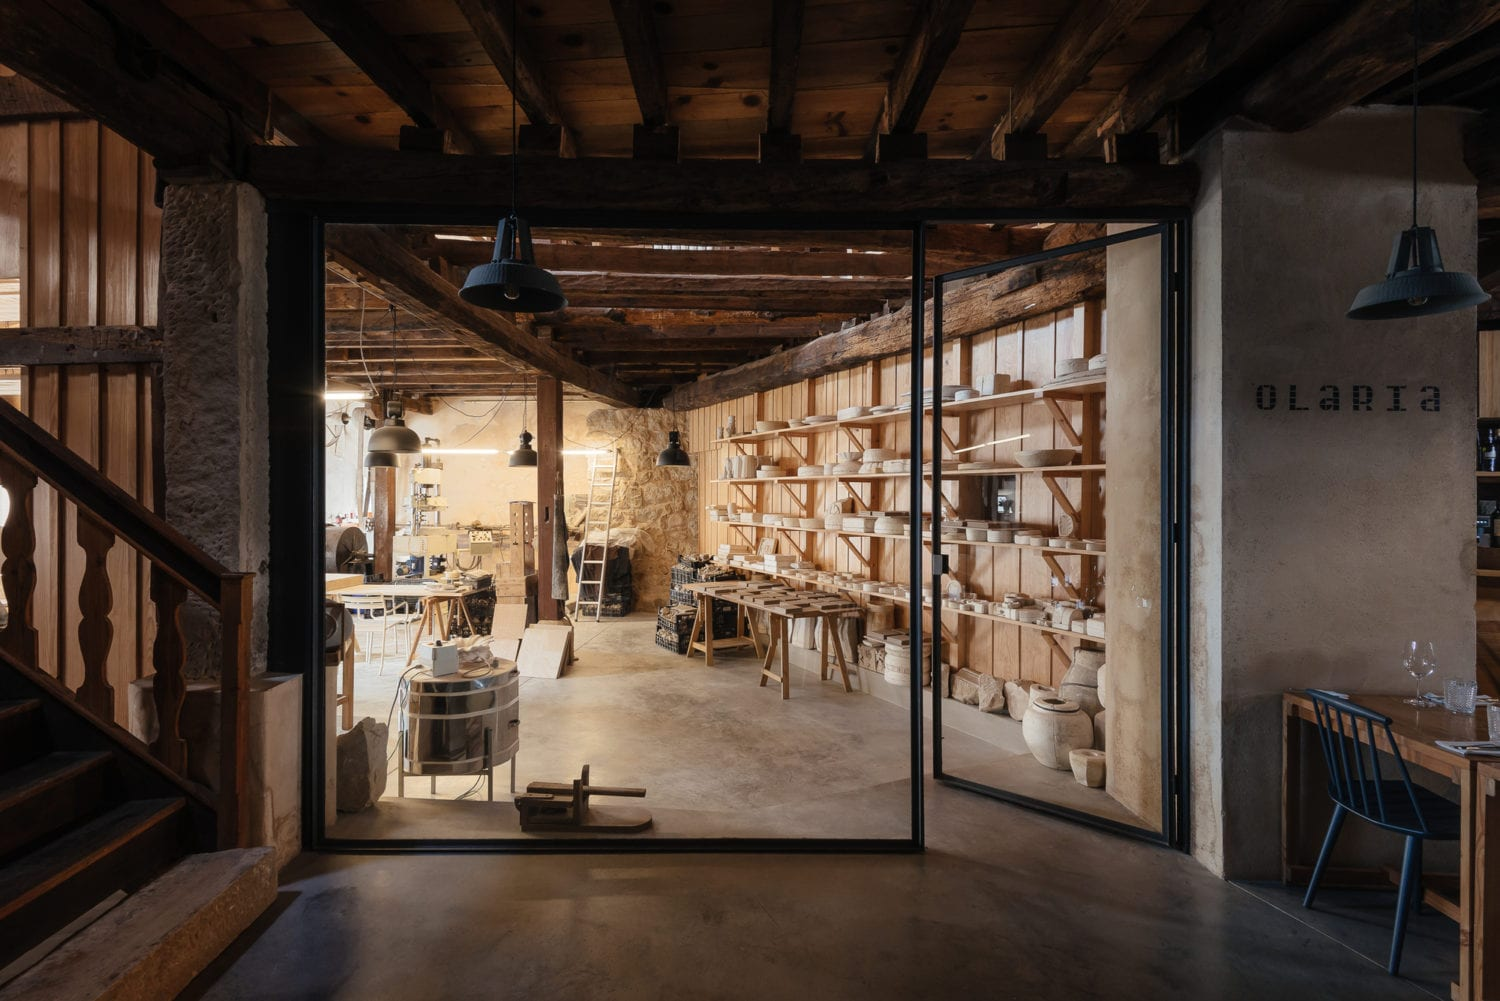 Luisa Bebiano And Atelier Do Corvo Renovation Old Ceramic Society Of Coimbra 18th Century Building Yellowtrace 05